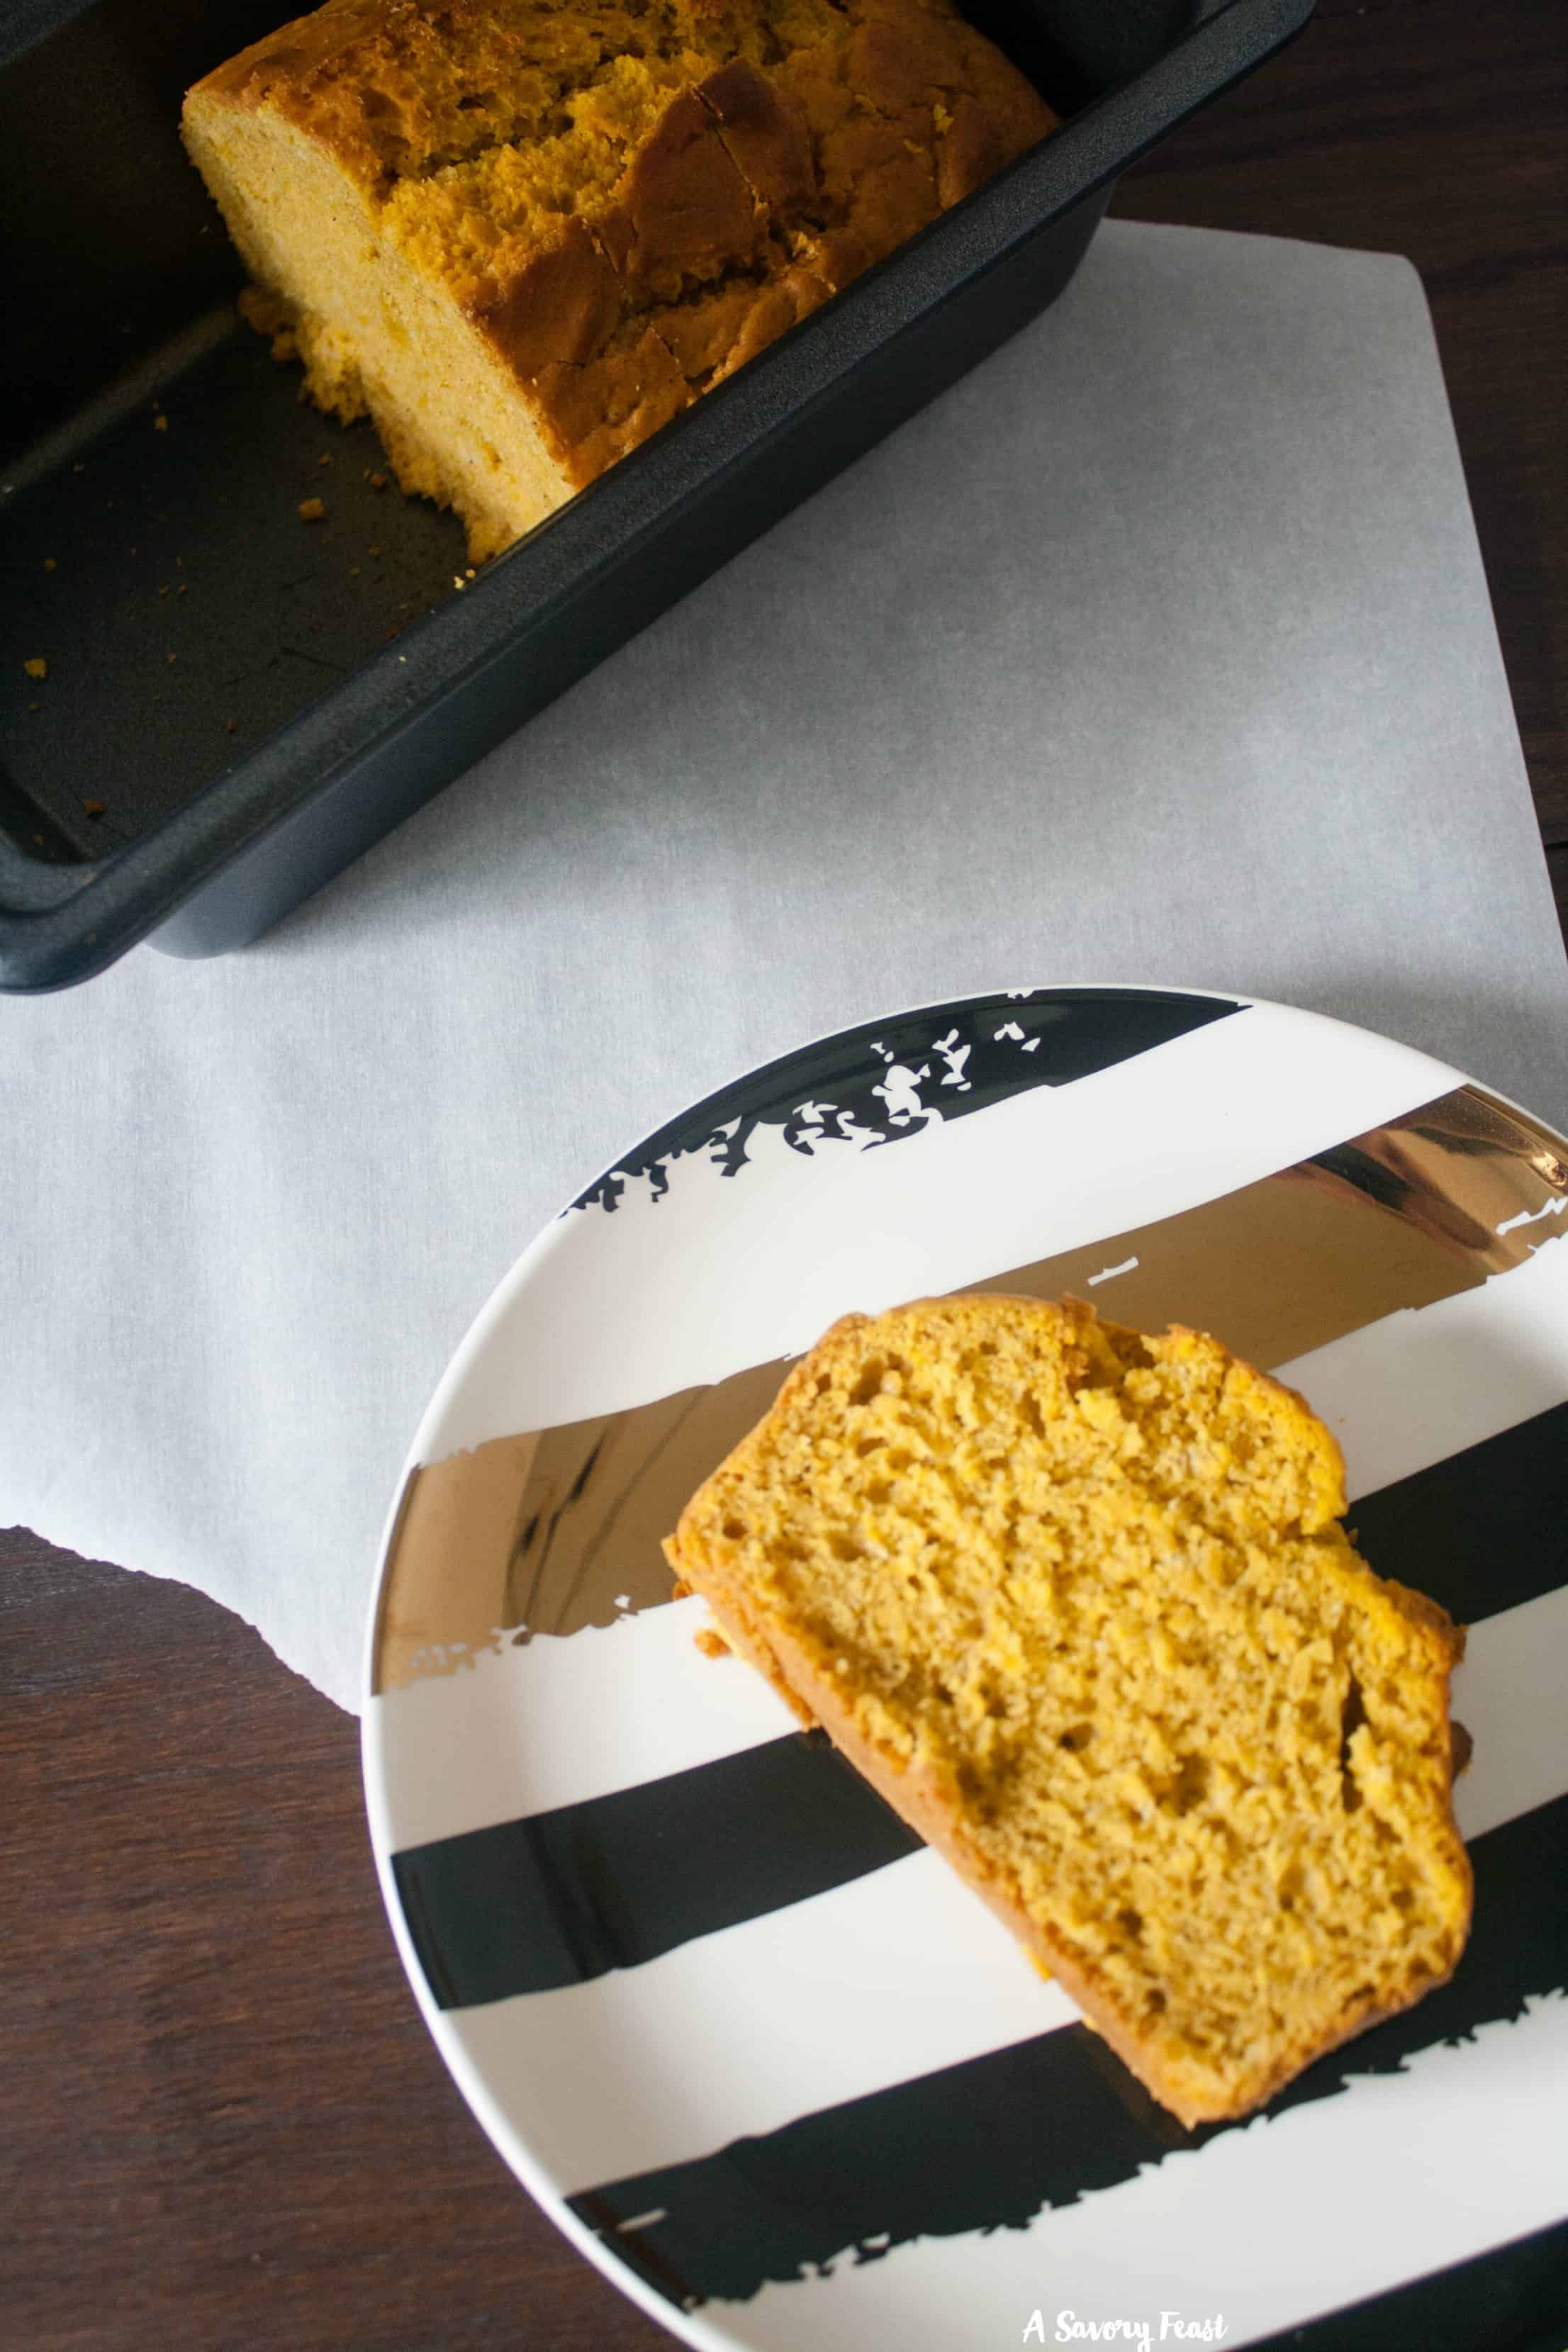 This One Bowl Vegan Pumpkin Bread is a quick way to get your pumpkin fix! Makes a great snack or grab-and-go breakfast. It's delicious with a cup of coffee.